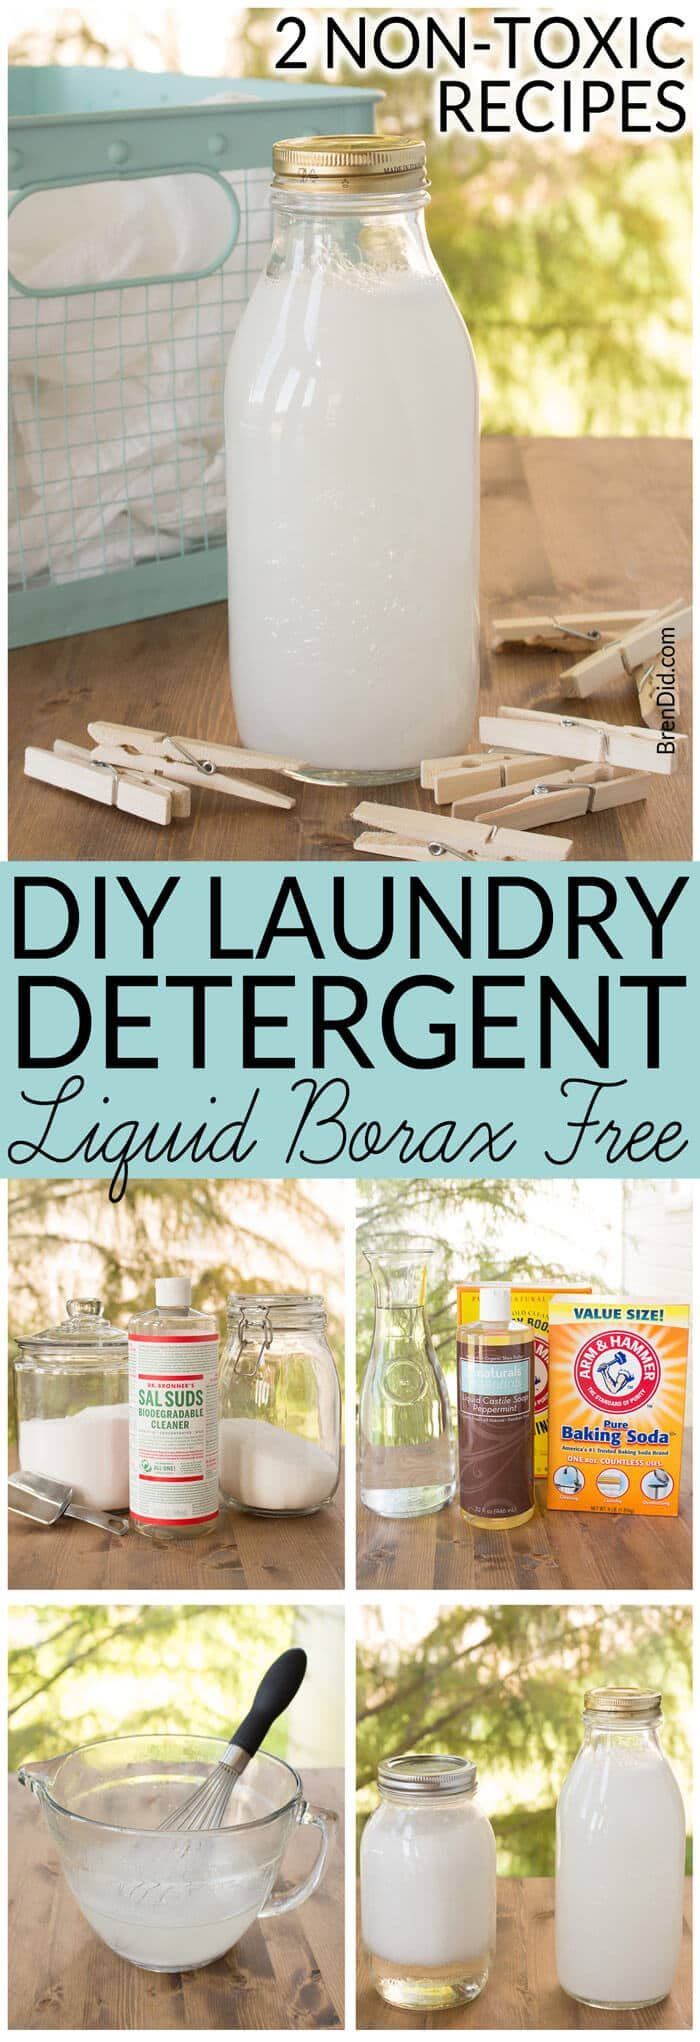 Two easy laundry detergent liquid recipes. Learn to make small batch non-toxic laundry detergent that rates an A on the EWG Healthy Cleaning scale.  Borax free. 14 loads for $3.00. via @brendidblog